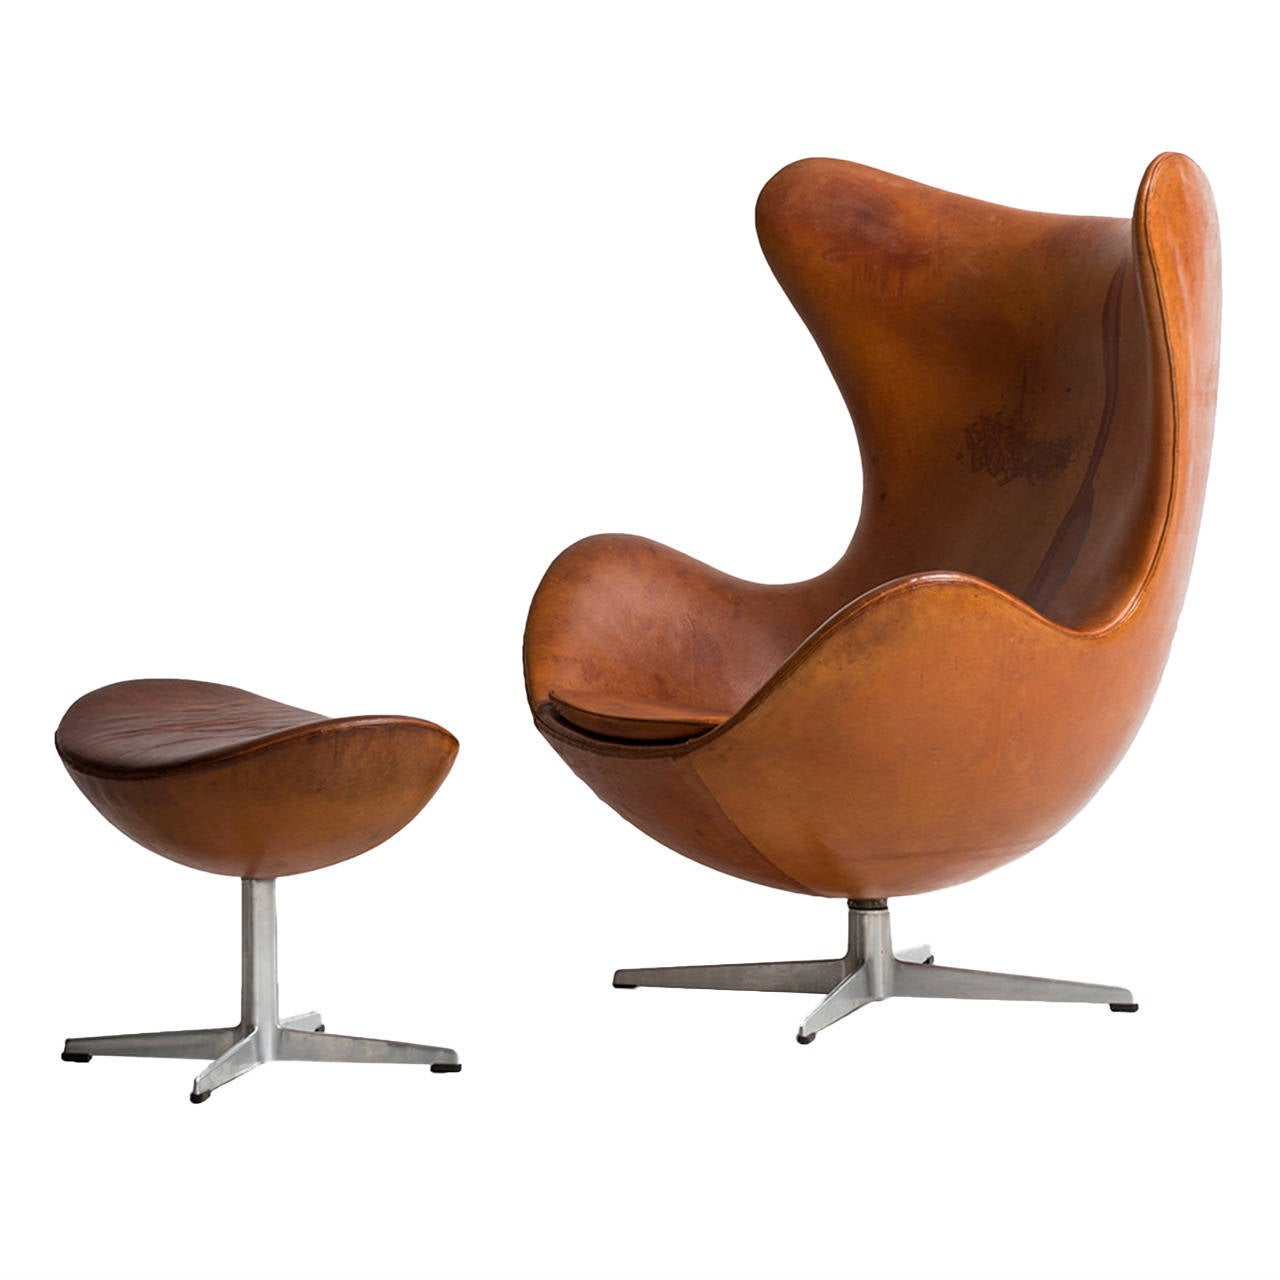 Design Egg Chair arne jacobsen egg chair in original cognac brown leather by fritz hansen 1